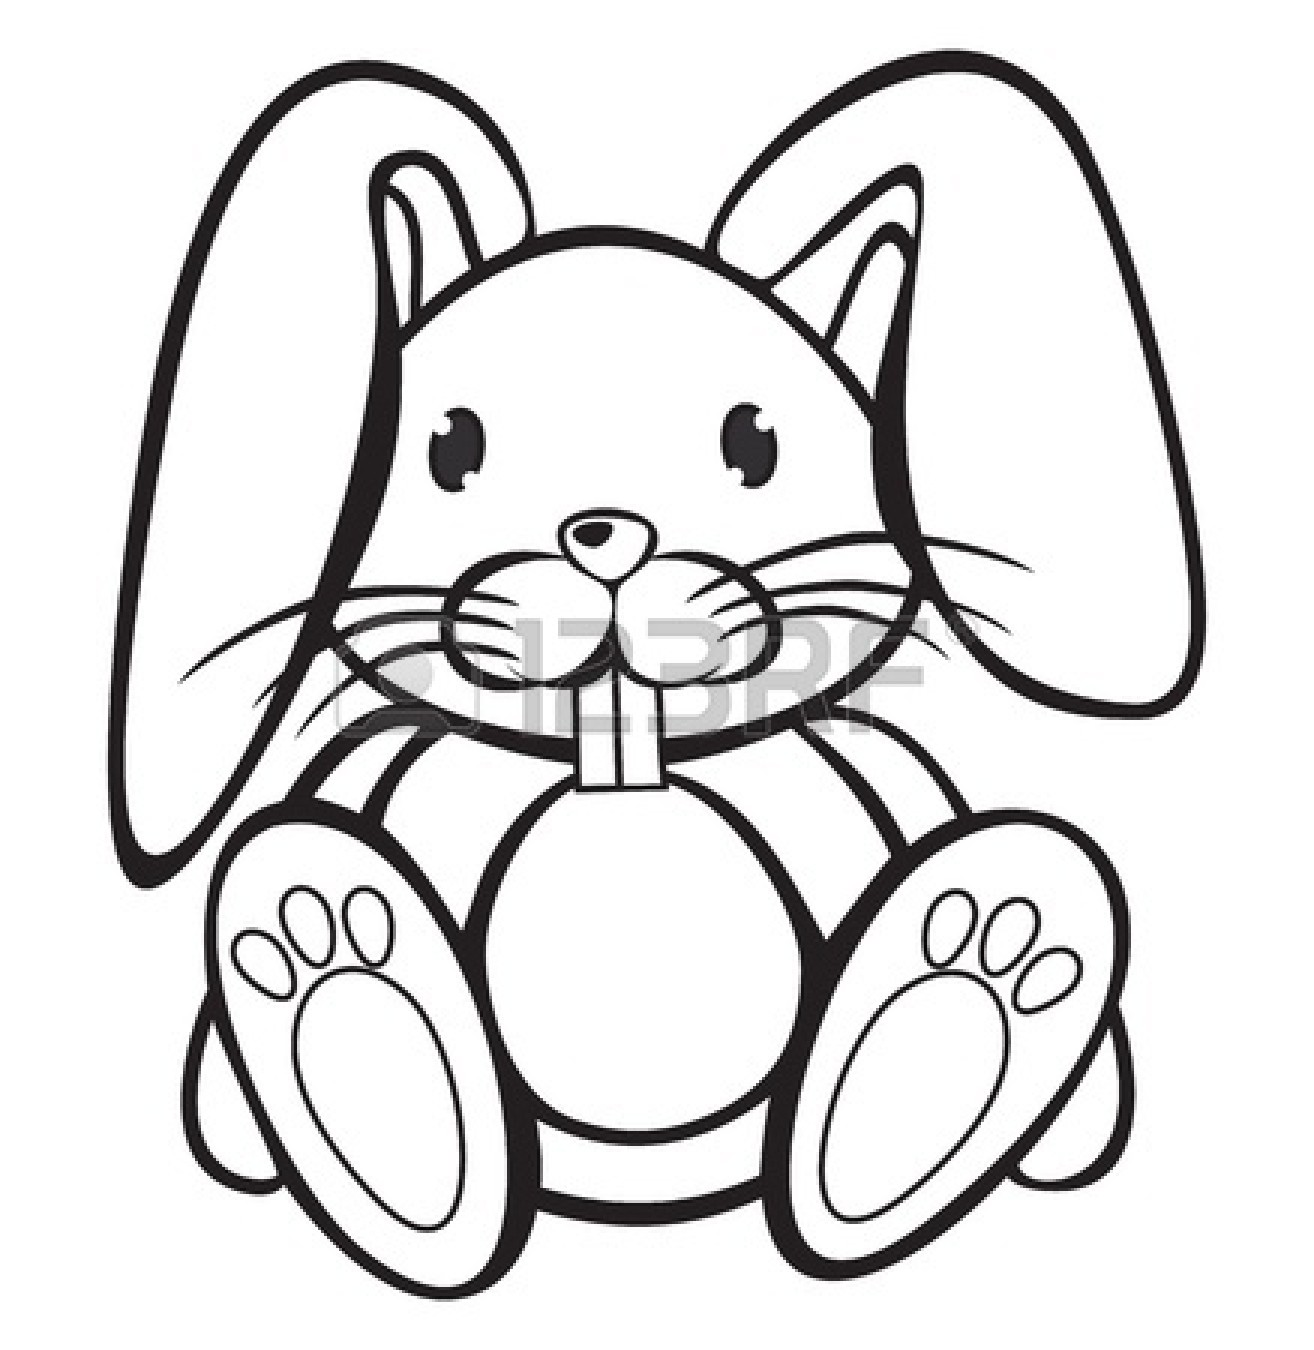 Rabbit Clipart Black And White 15825639 Cute Rabbit Black And White